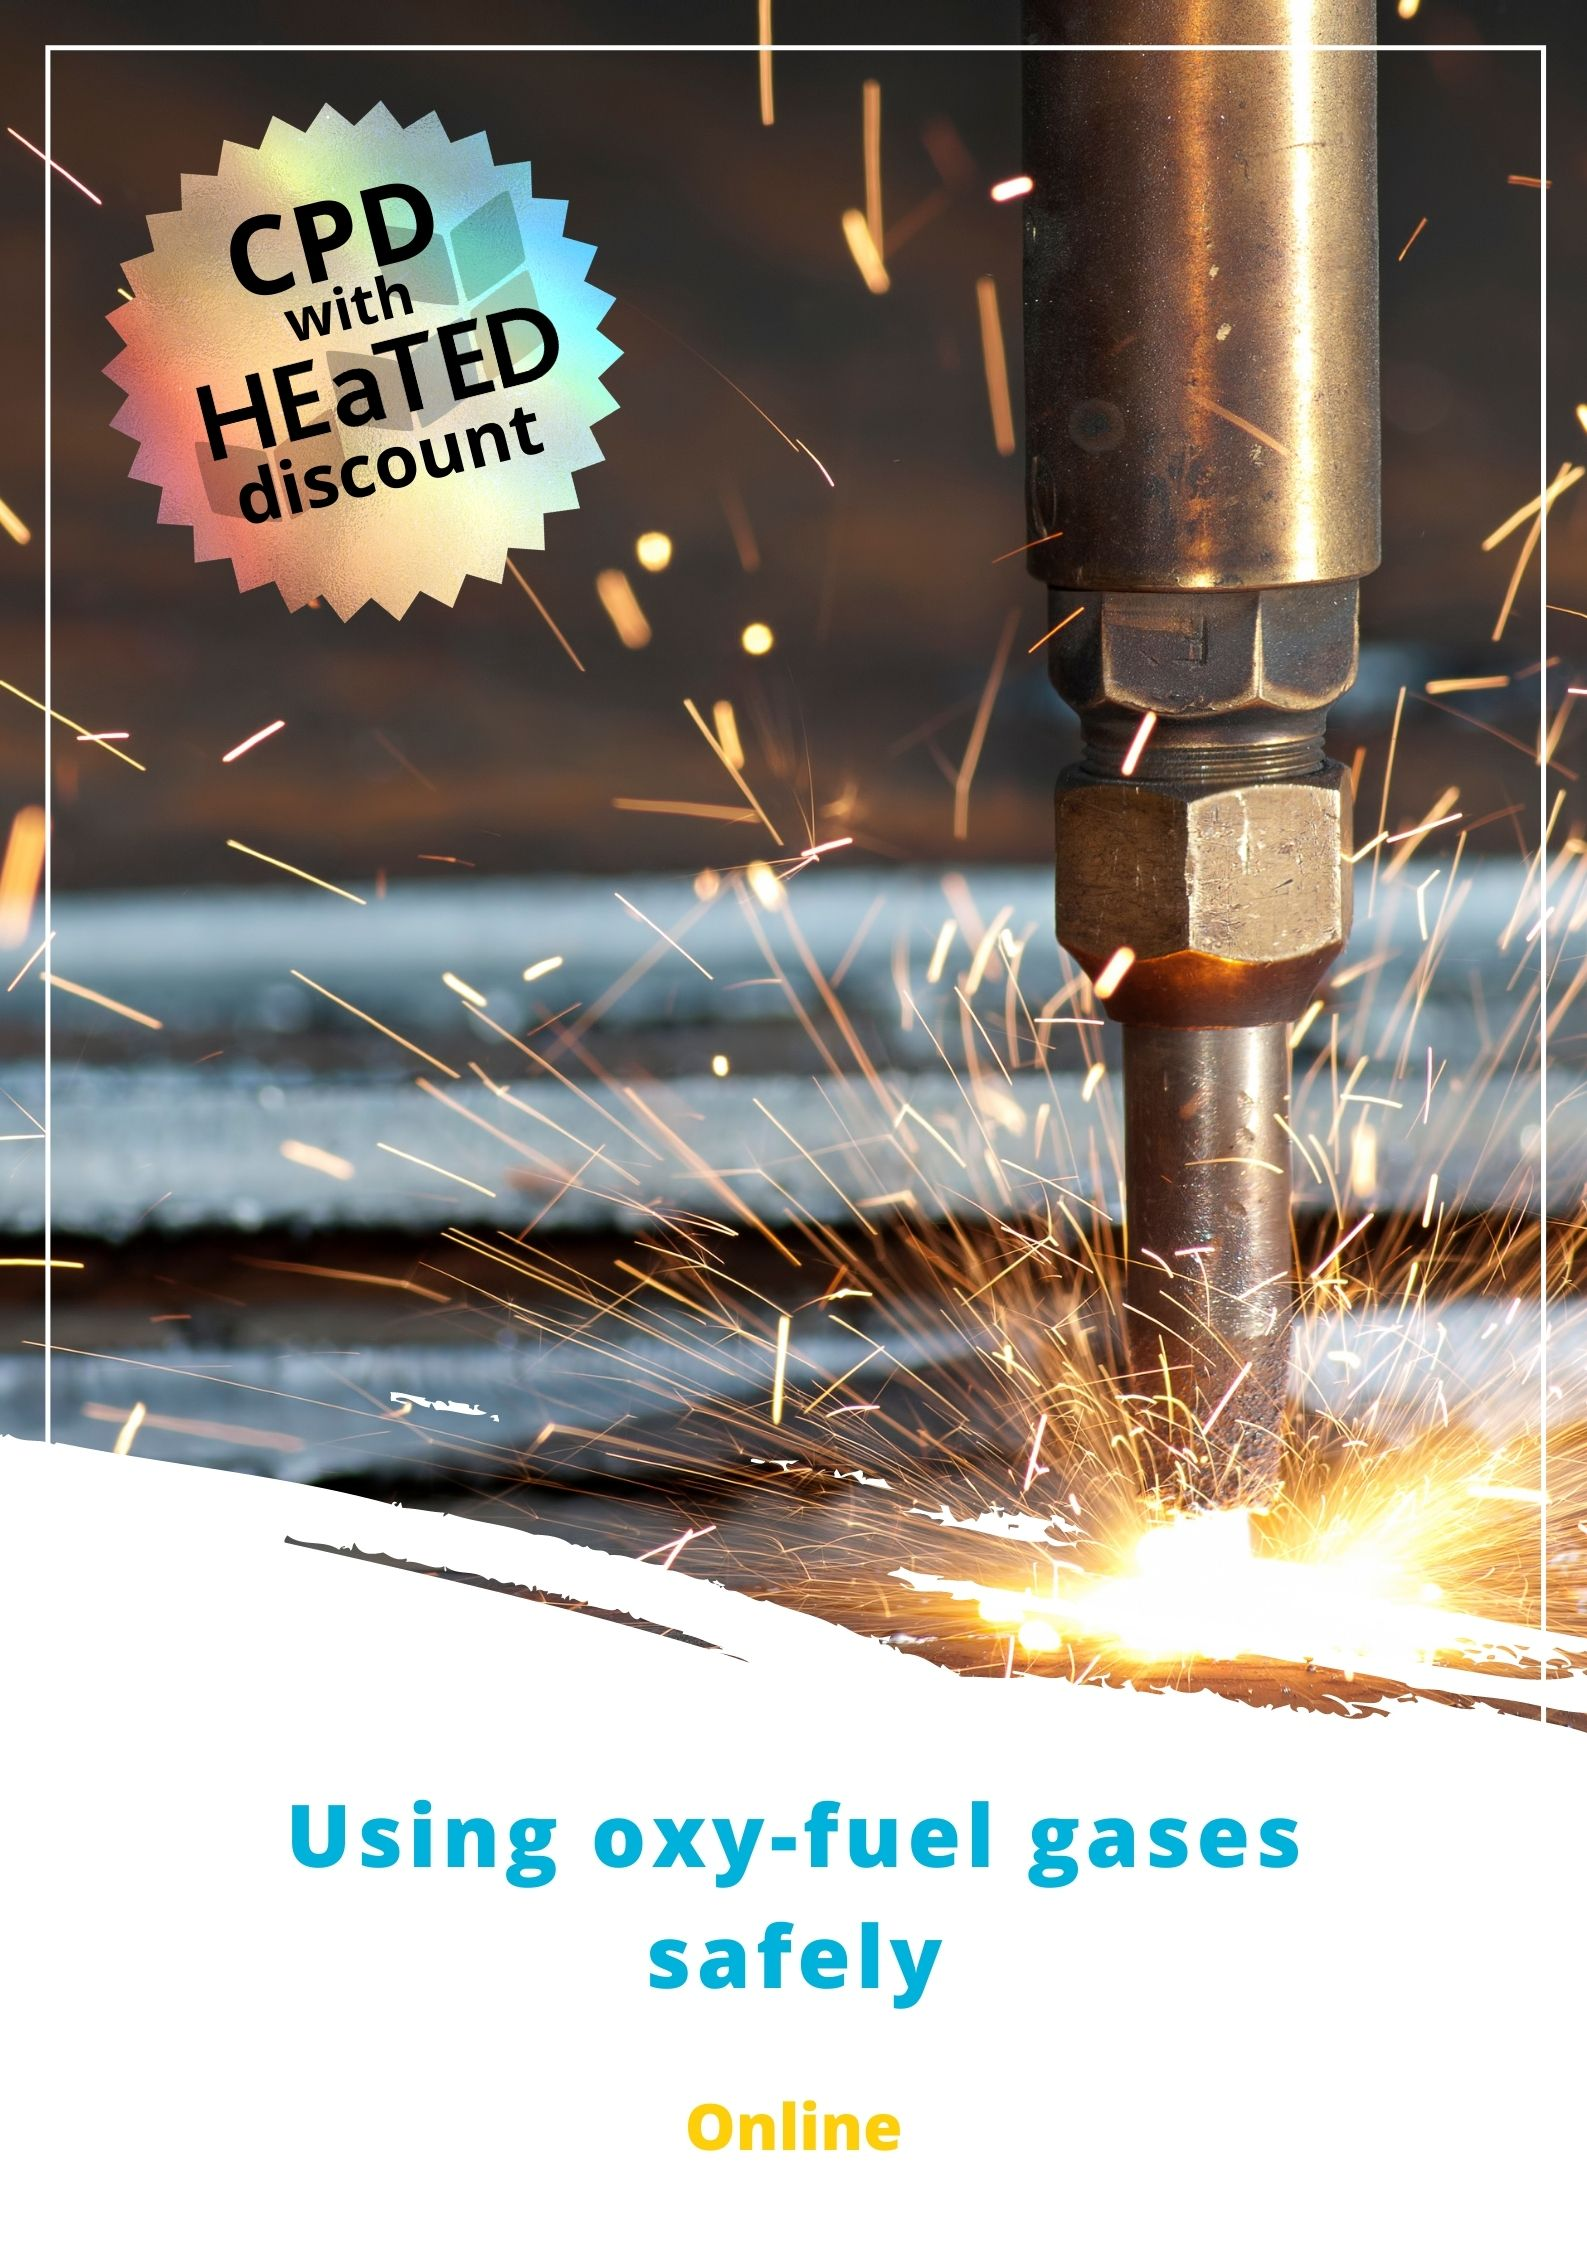 Using oxy-fuel gases safely brochure